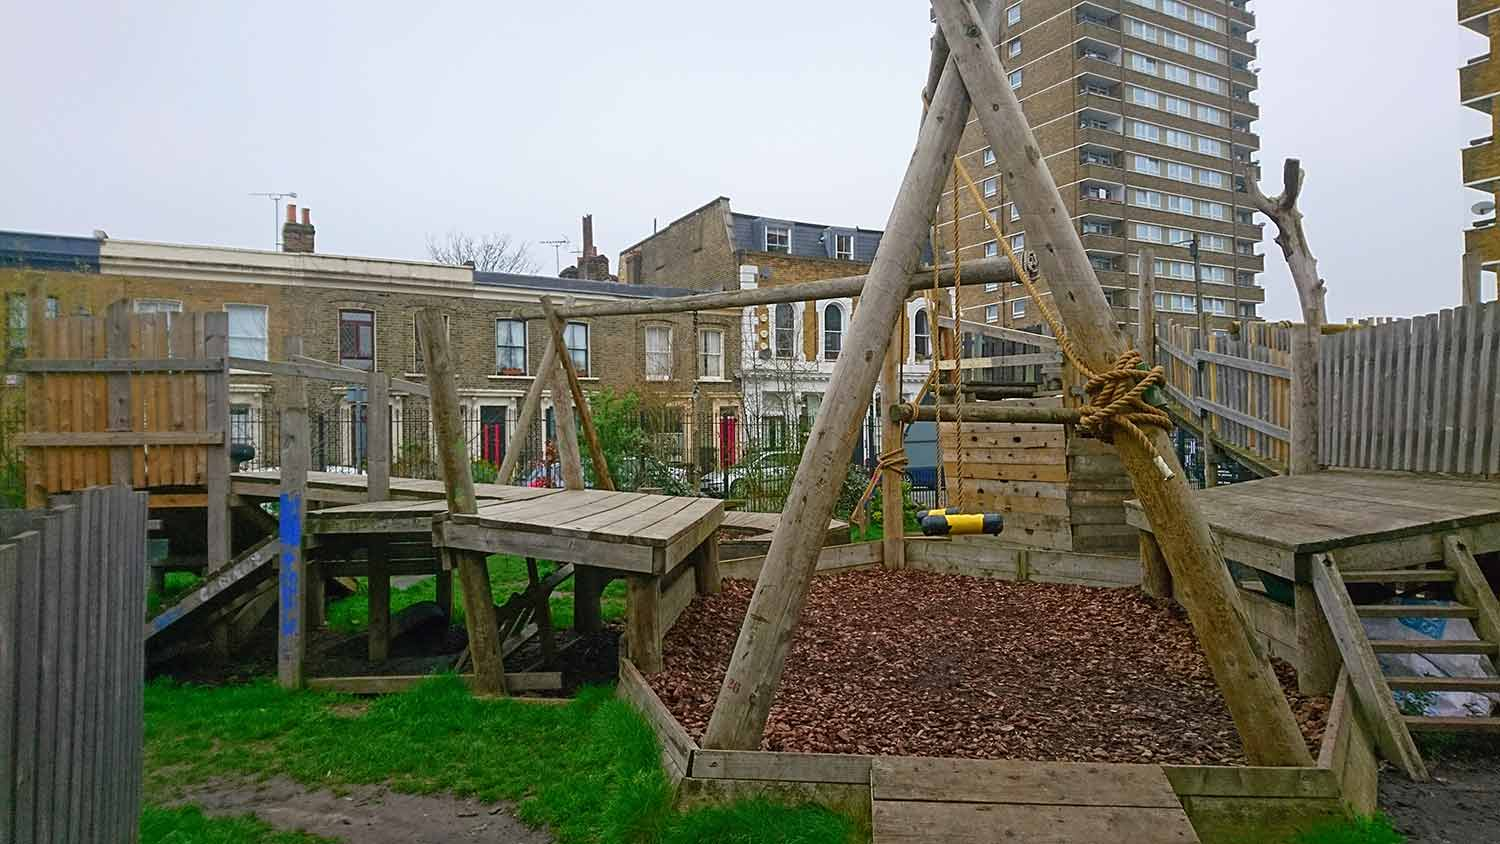 Playground equipment at Roman Road Adventure Playground